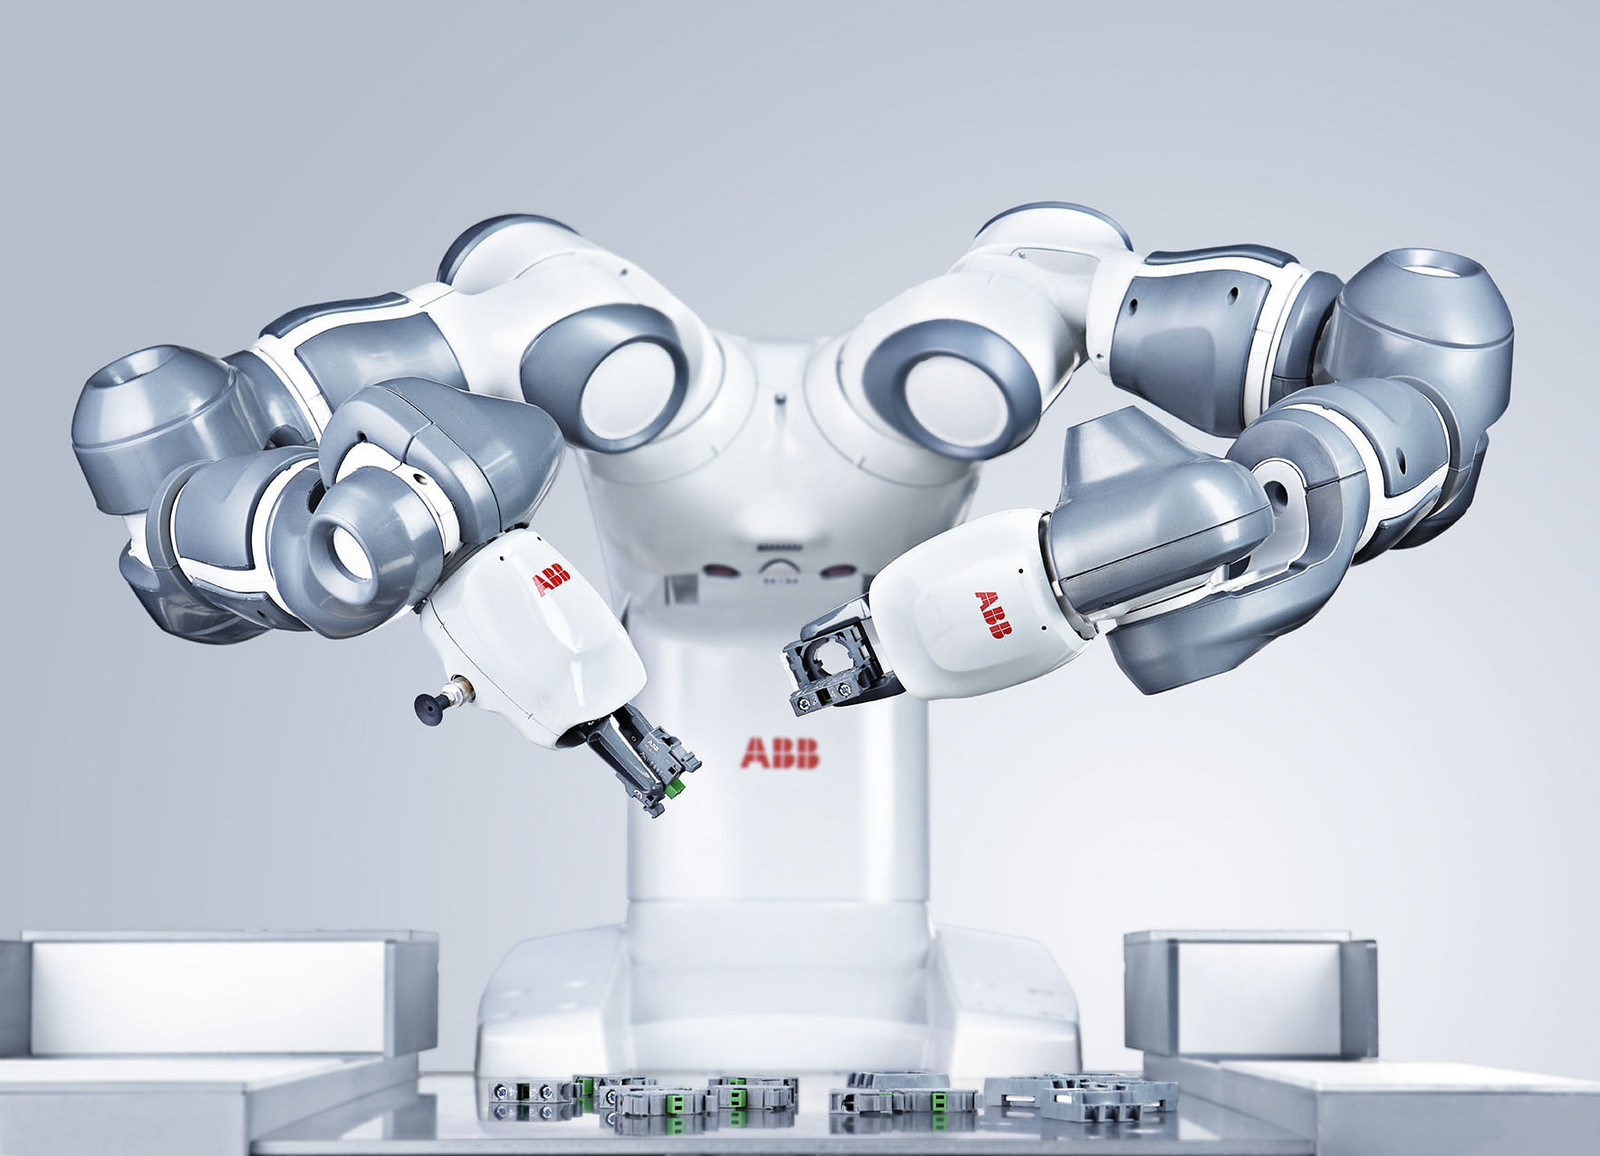 Connected Services Suite helps train users in robotics